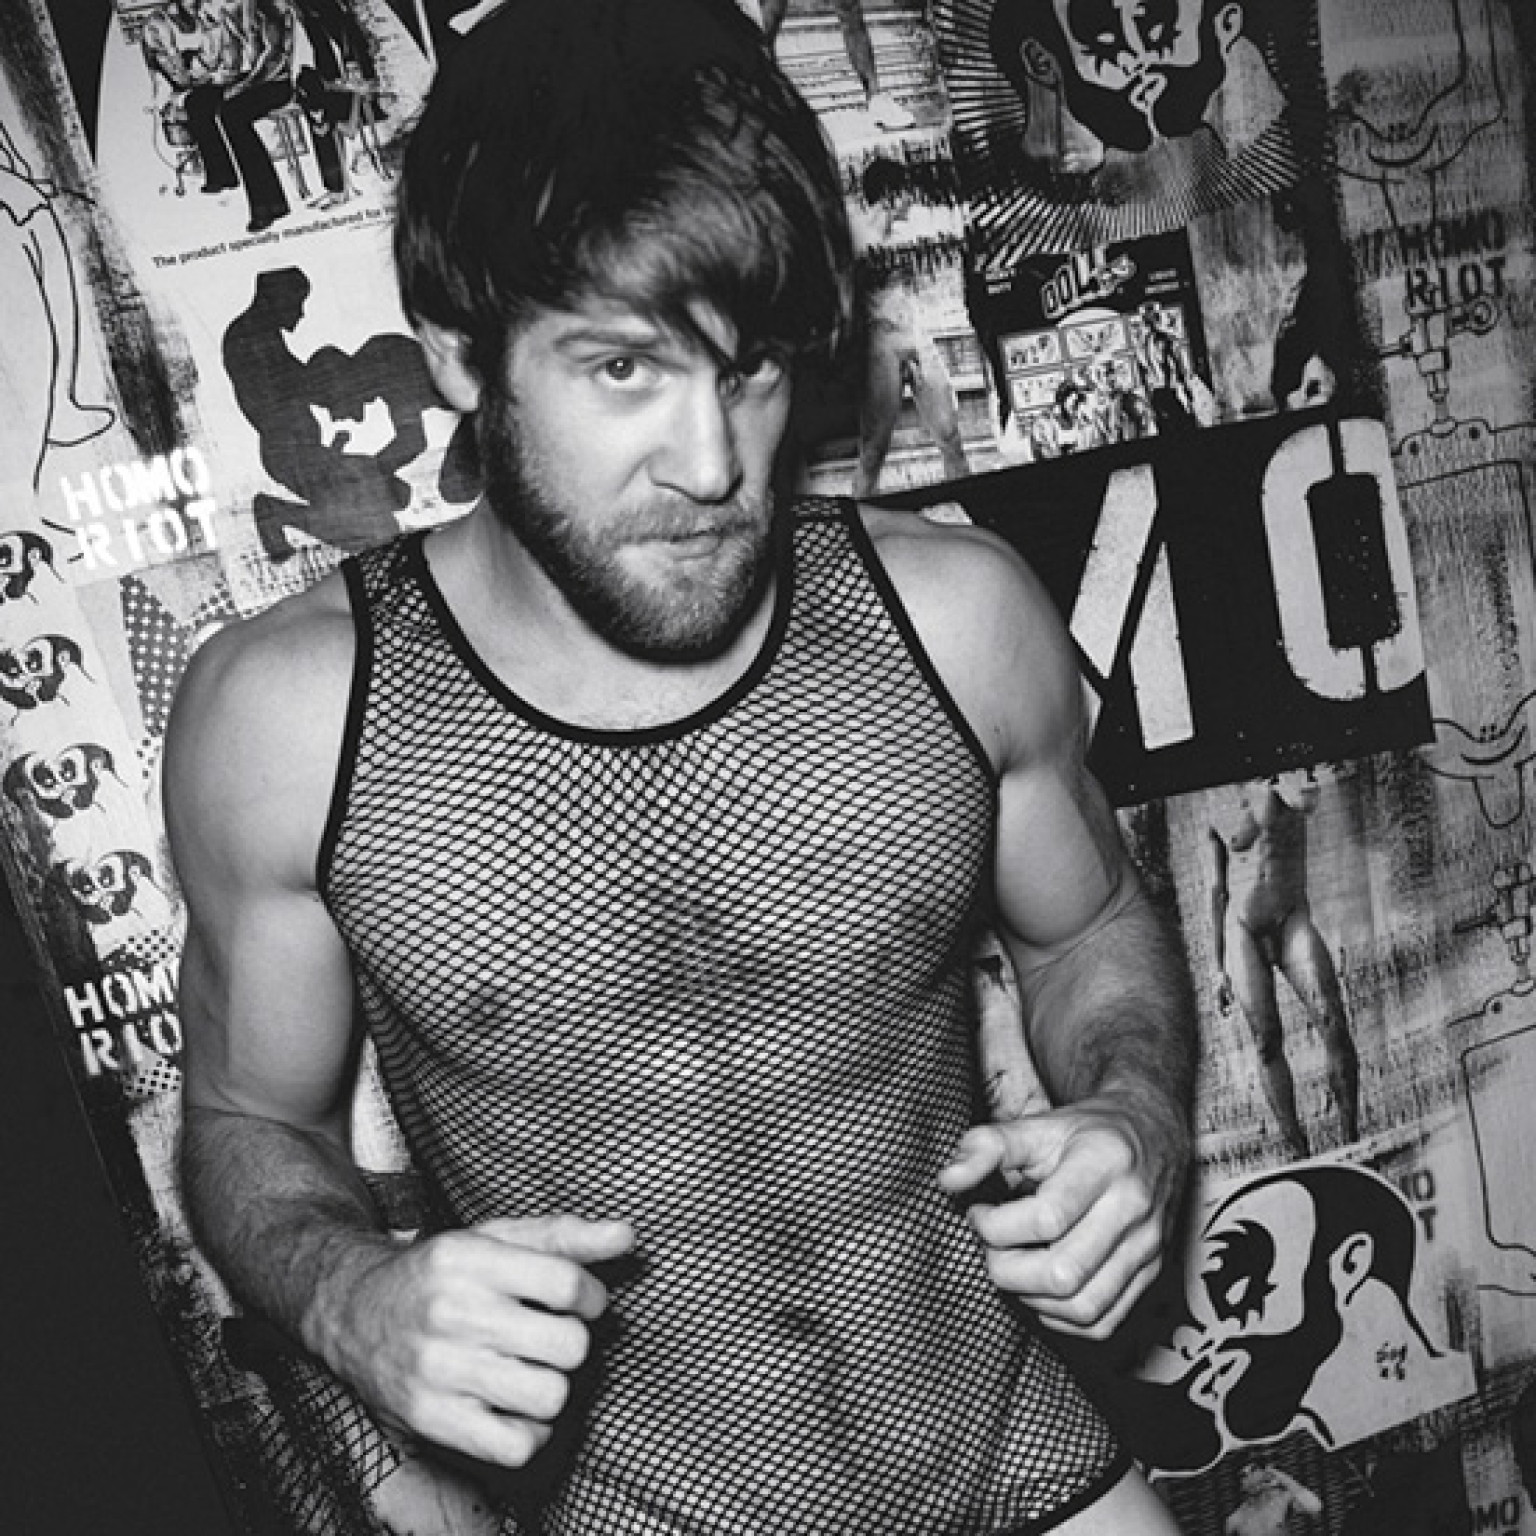 colby gay porn star The latest Tweets from Colby Keller (@colbykeller).